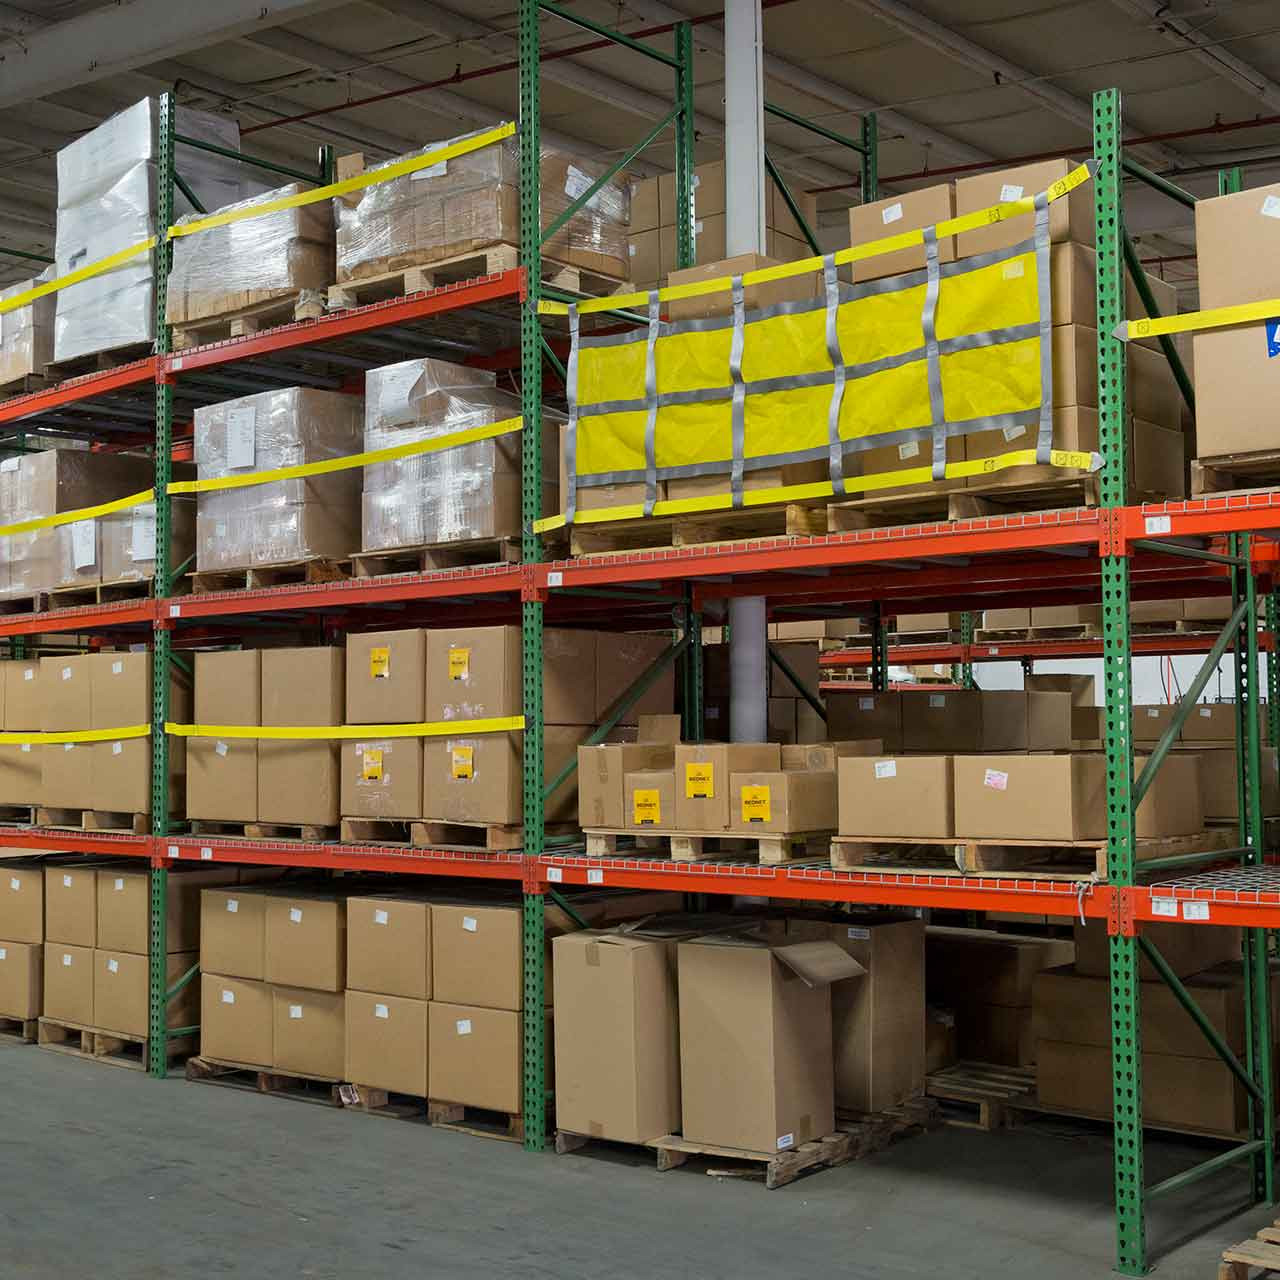 The pallet racking sliding safety nets install quickly and easily